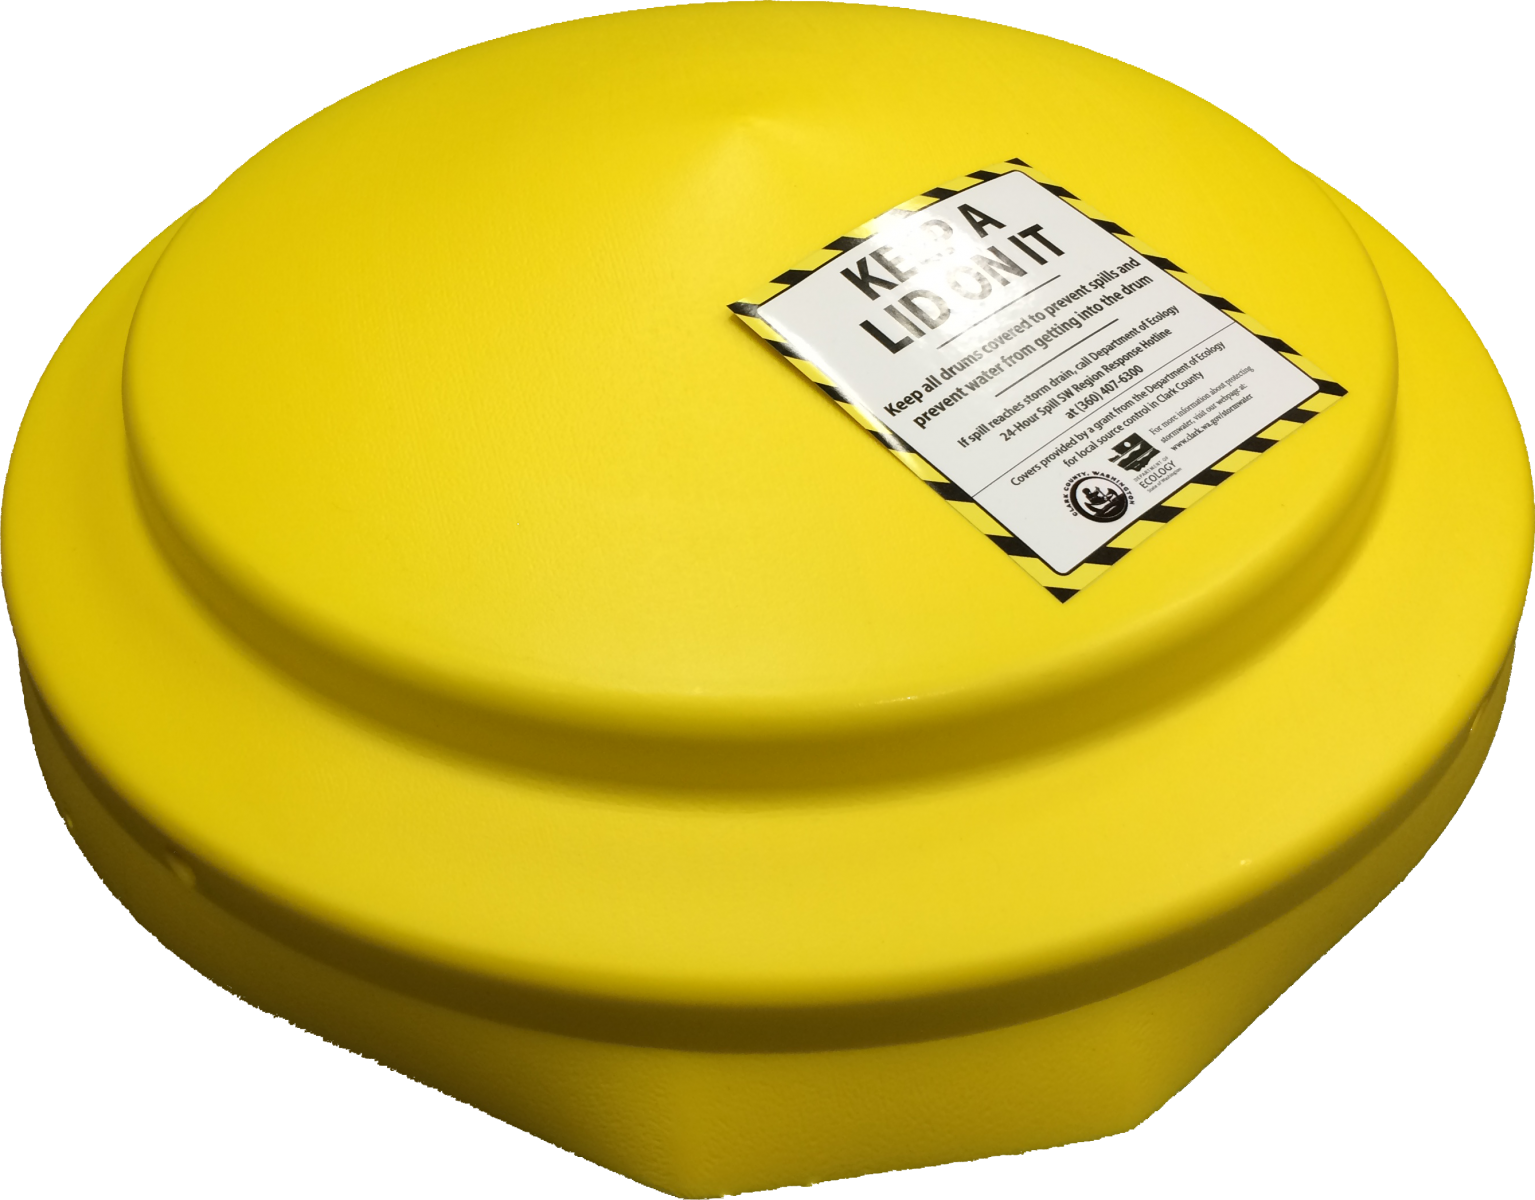 Spill prevention drum lid